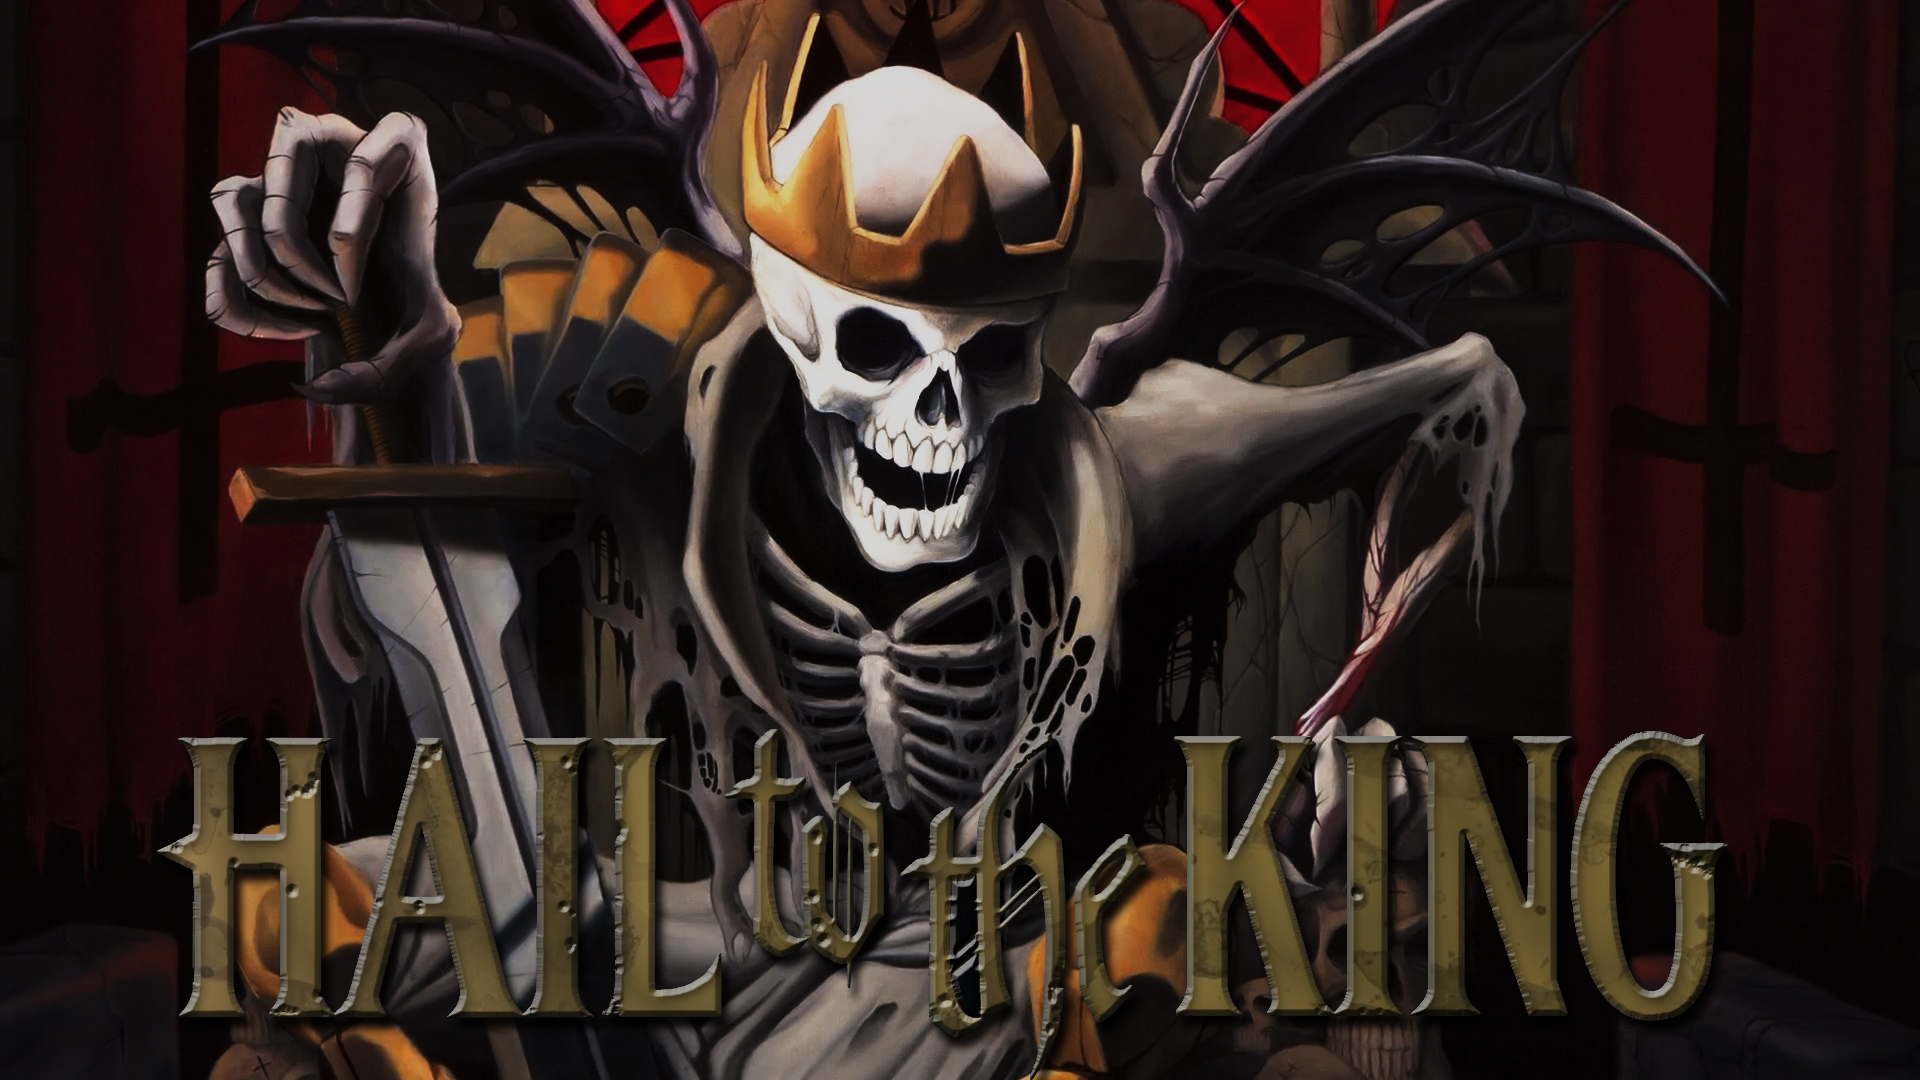 Hail To The King Avenged Sevenfold Wallpaper By ChaoticHazard